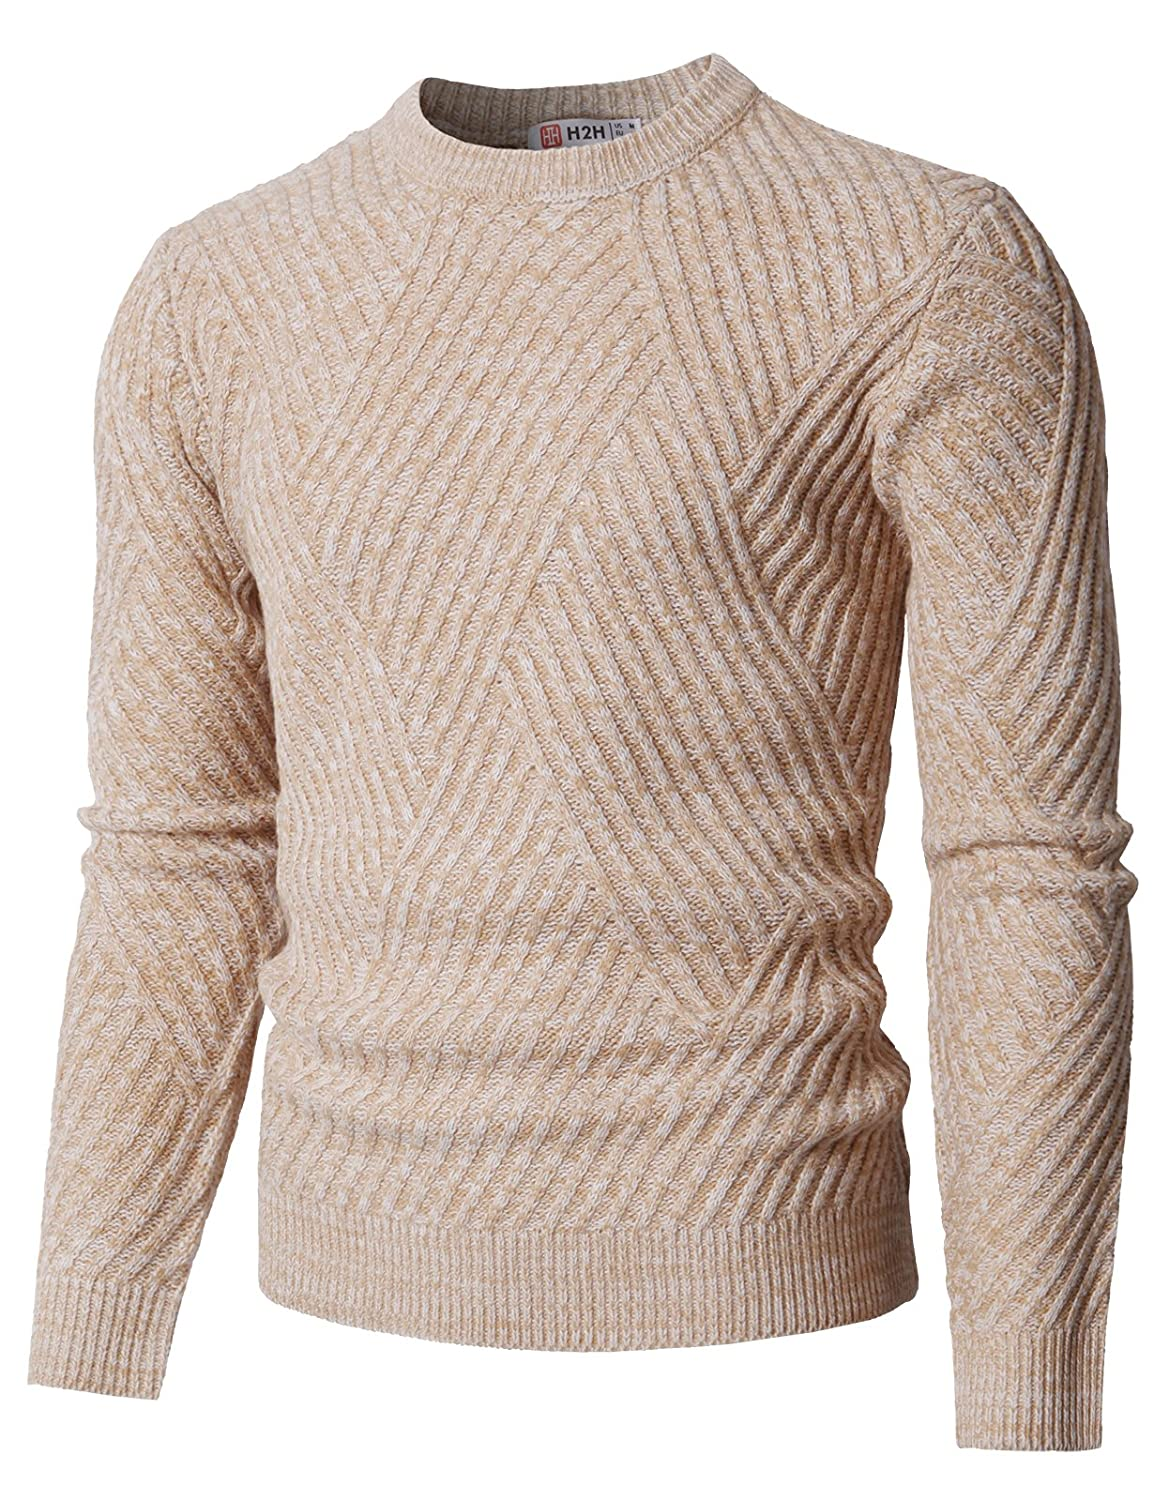 Ohoo Mens Slim Fit Crew-Neck Pullover Sweater at Amazon Men's ...